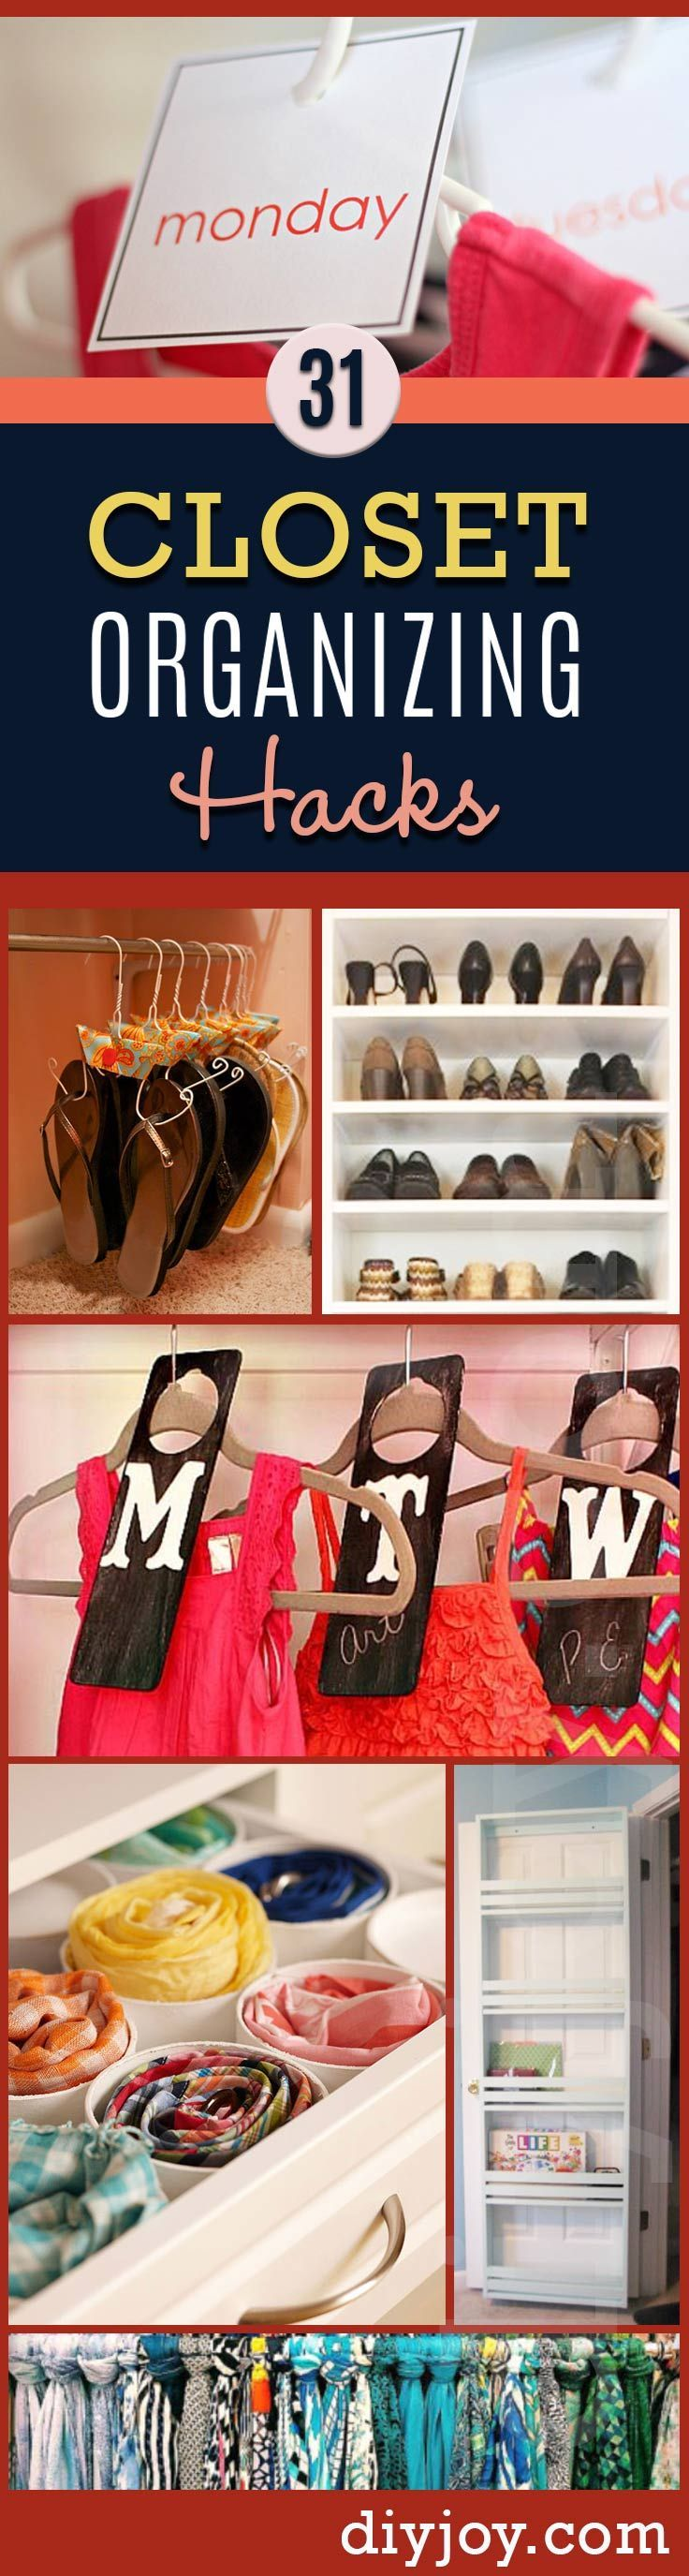 DIY Closet Organizing Tips - DIY Closet Organization Ideas for Messy Closets and Small Spaces. Organizing Hacks and Homemade Shelving And Storage Tips for Garage, Pantry, Bedroom., Clothes and Kitchen